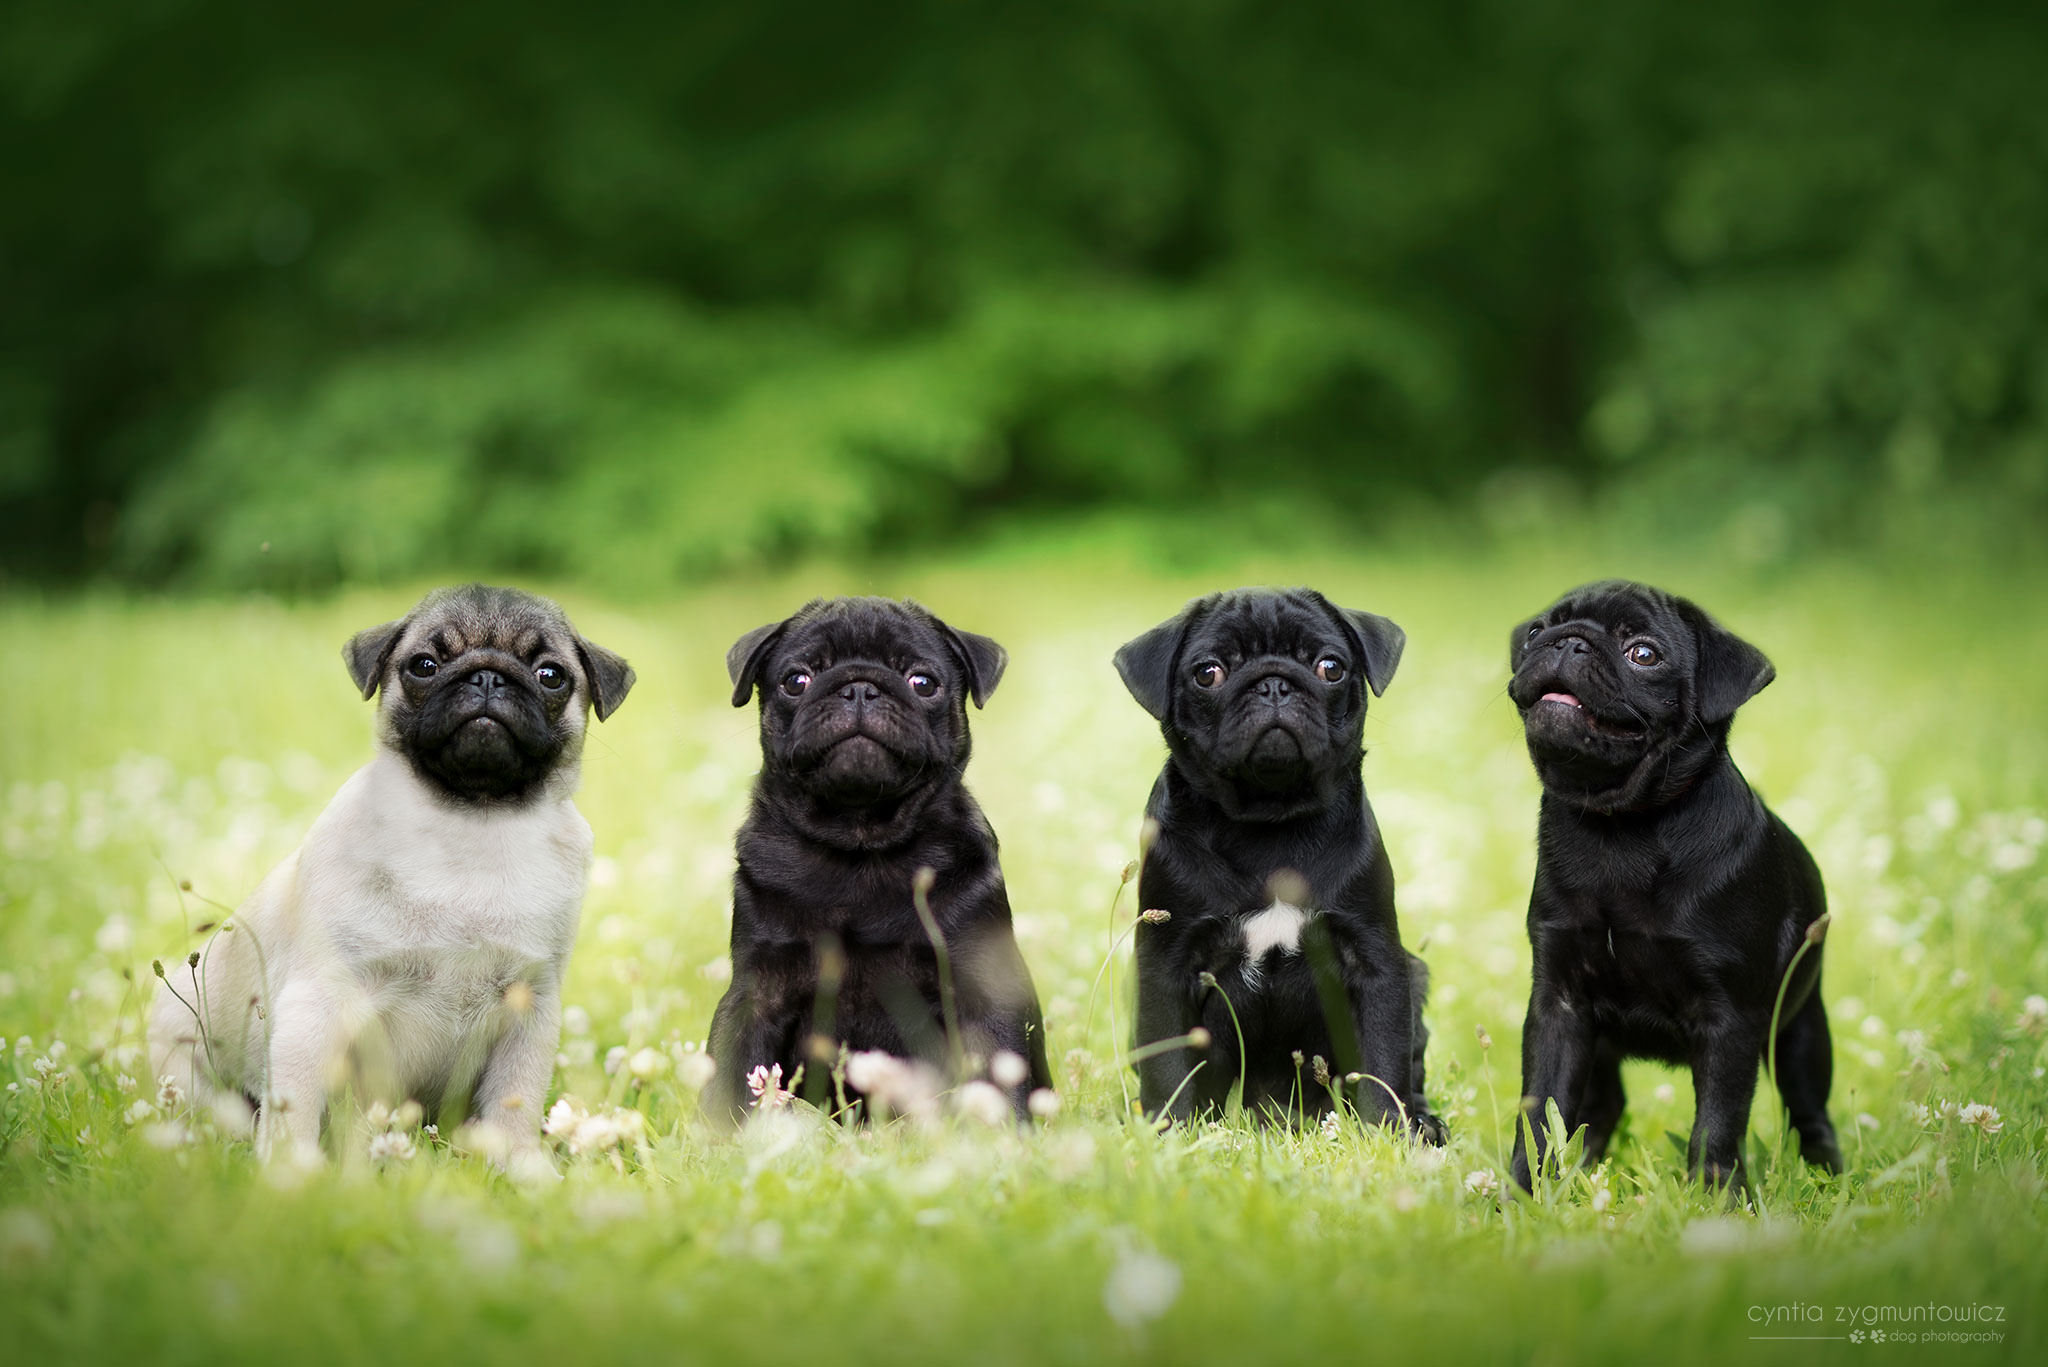 Pugs For Sale Ads Gumtree Classifieds South Africa 1000 pugs photo gallery